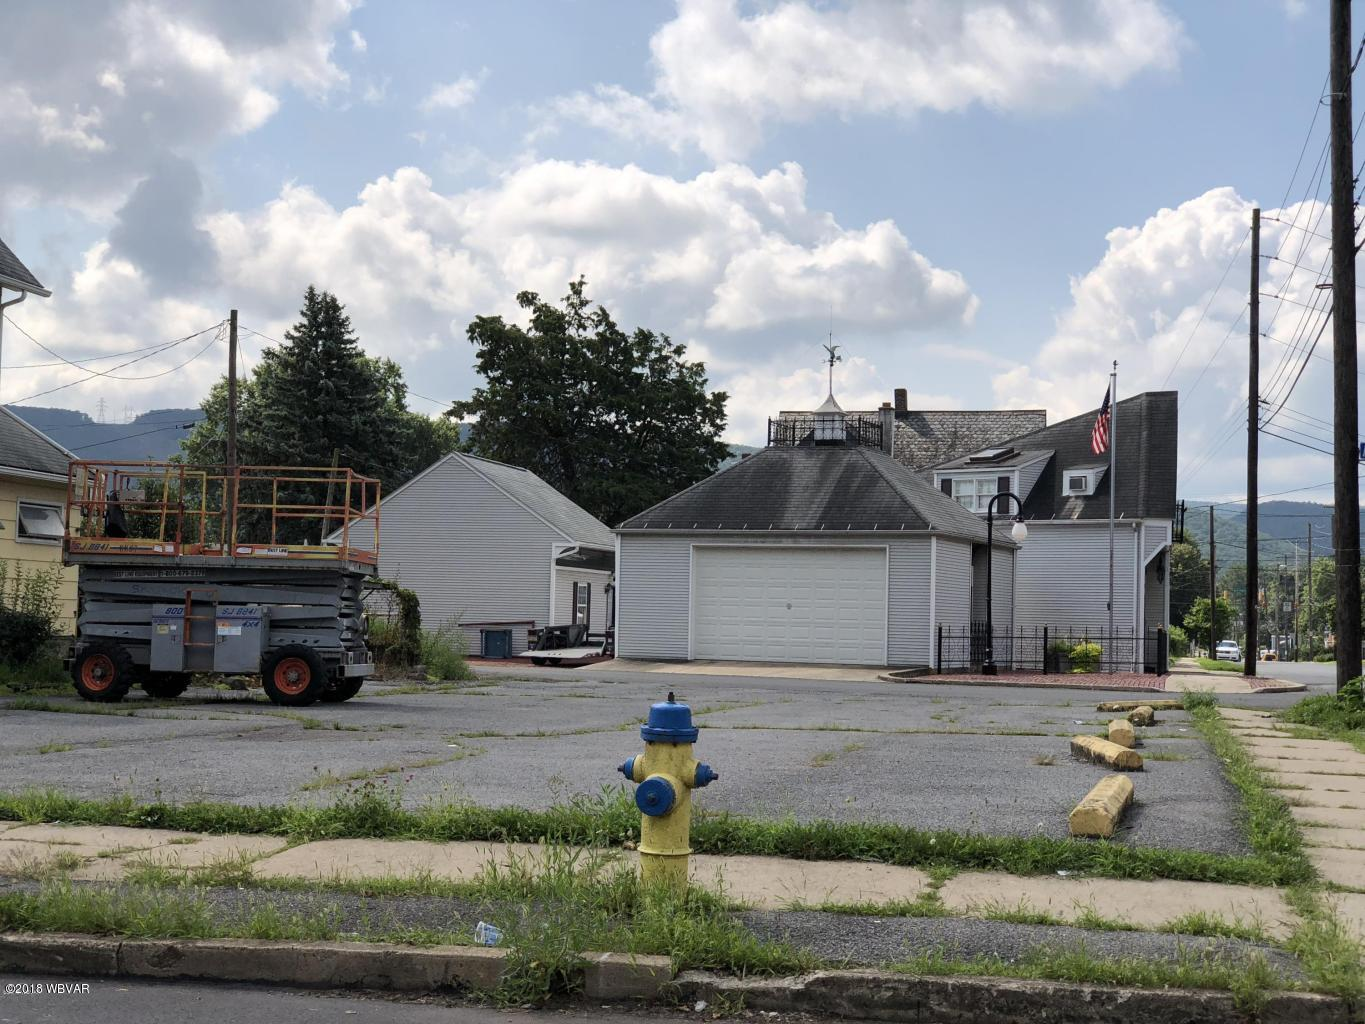 1253 MEMORIAL AVENUE,Williamsport,PA 17701,Land,MEMORIAL,WB-86059